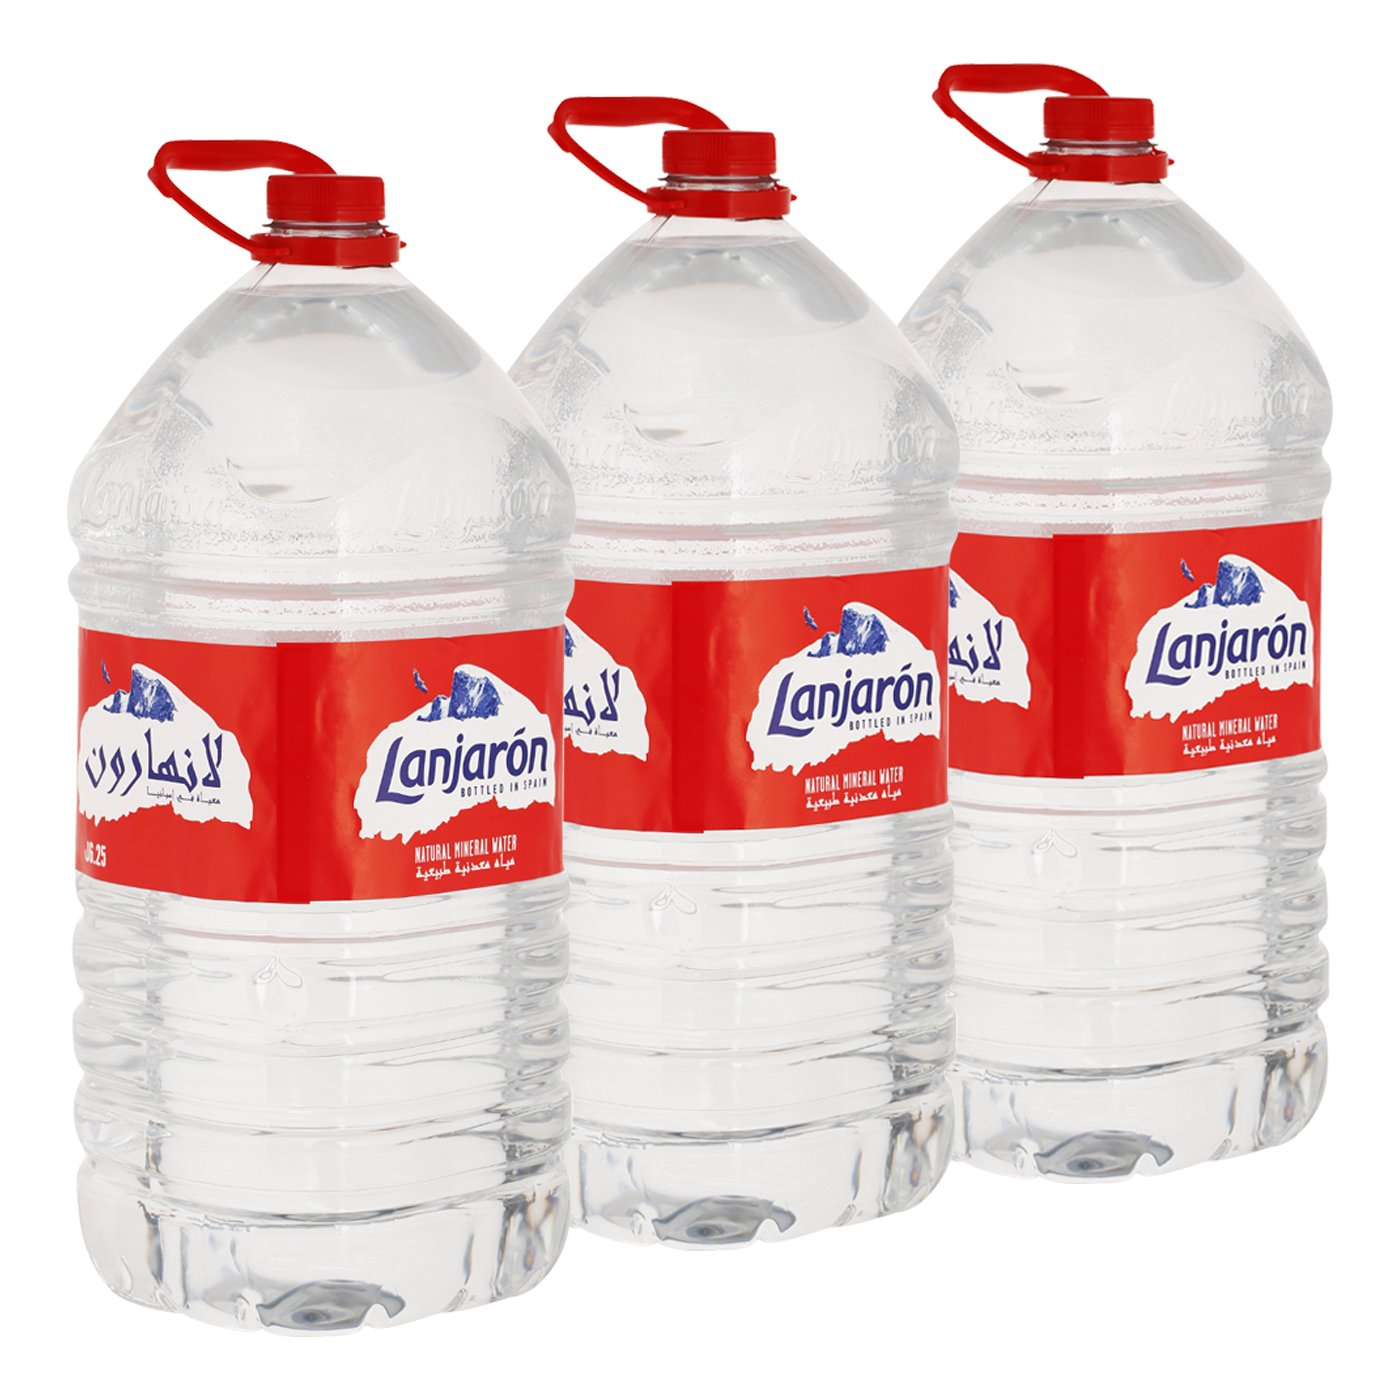 3 Bottles 6.25L Case (33 per Bottle)